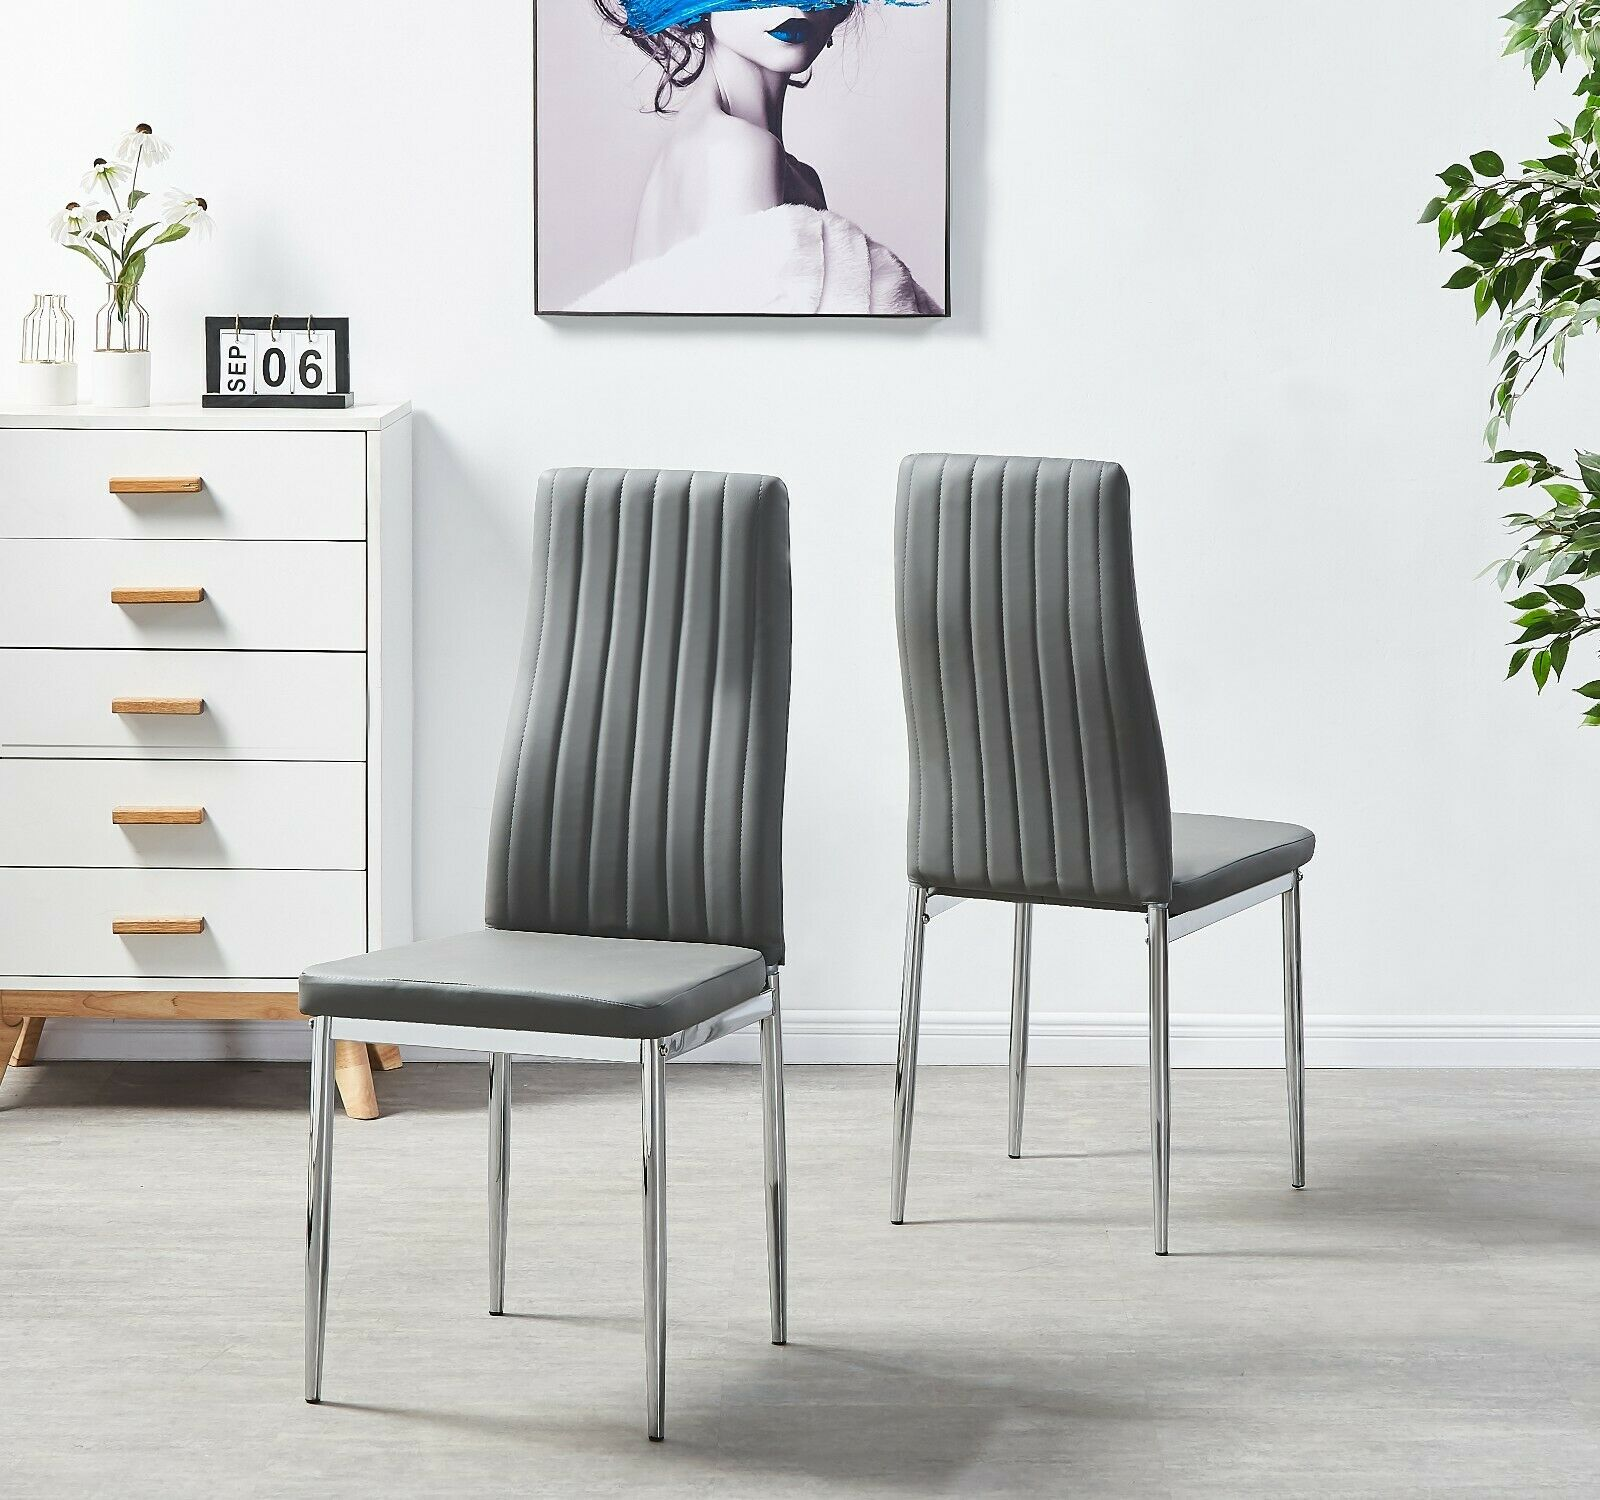 Set Of 4 Grey Modern Faux Leather Chrome Metal Legs Home Dining Chairs Kitchen Ebay